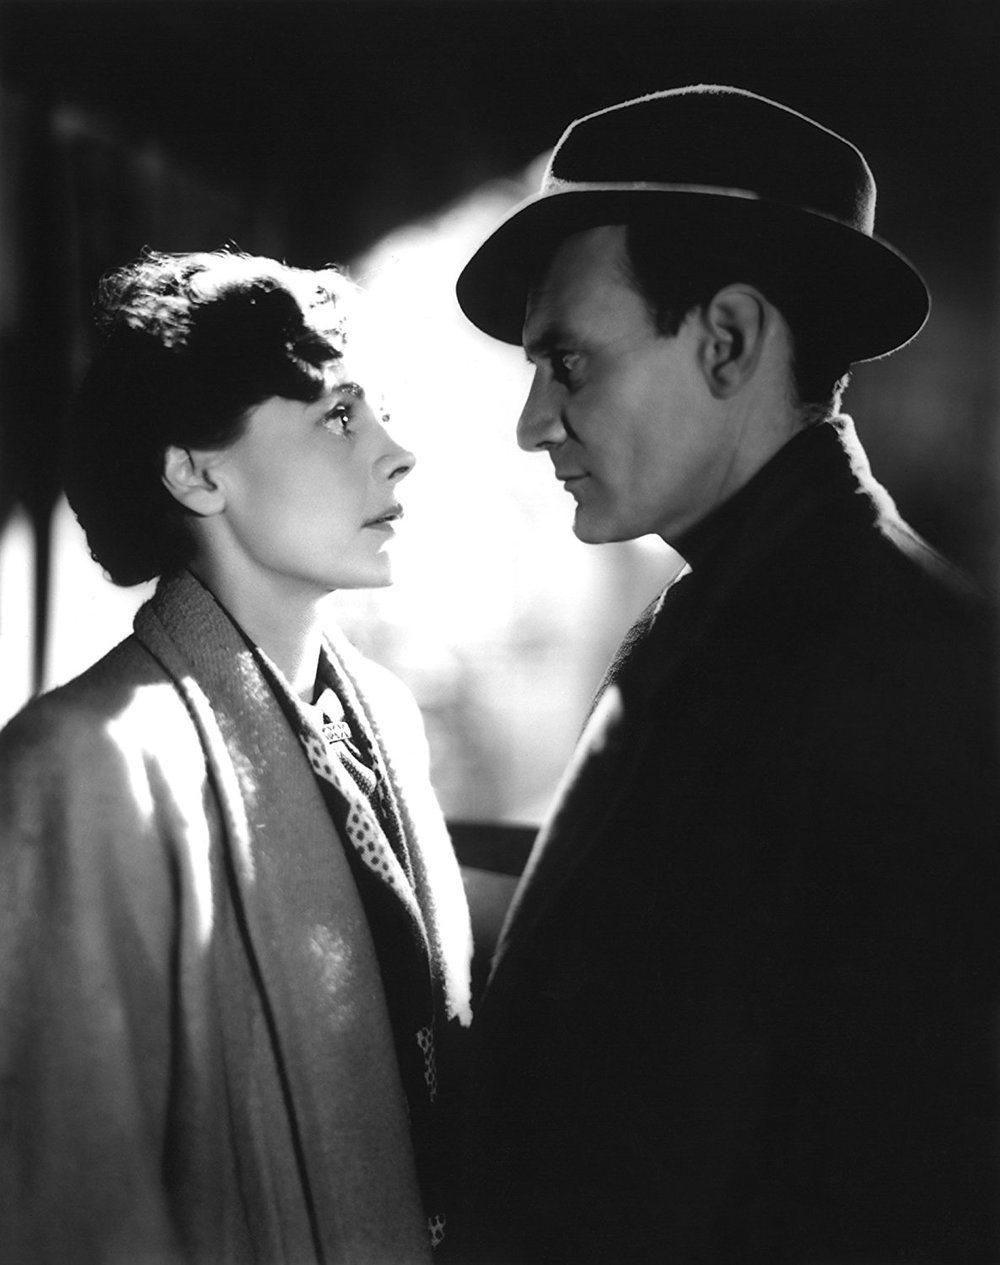 brief encounter 2.jpg